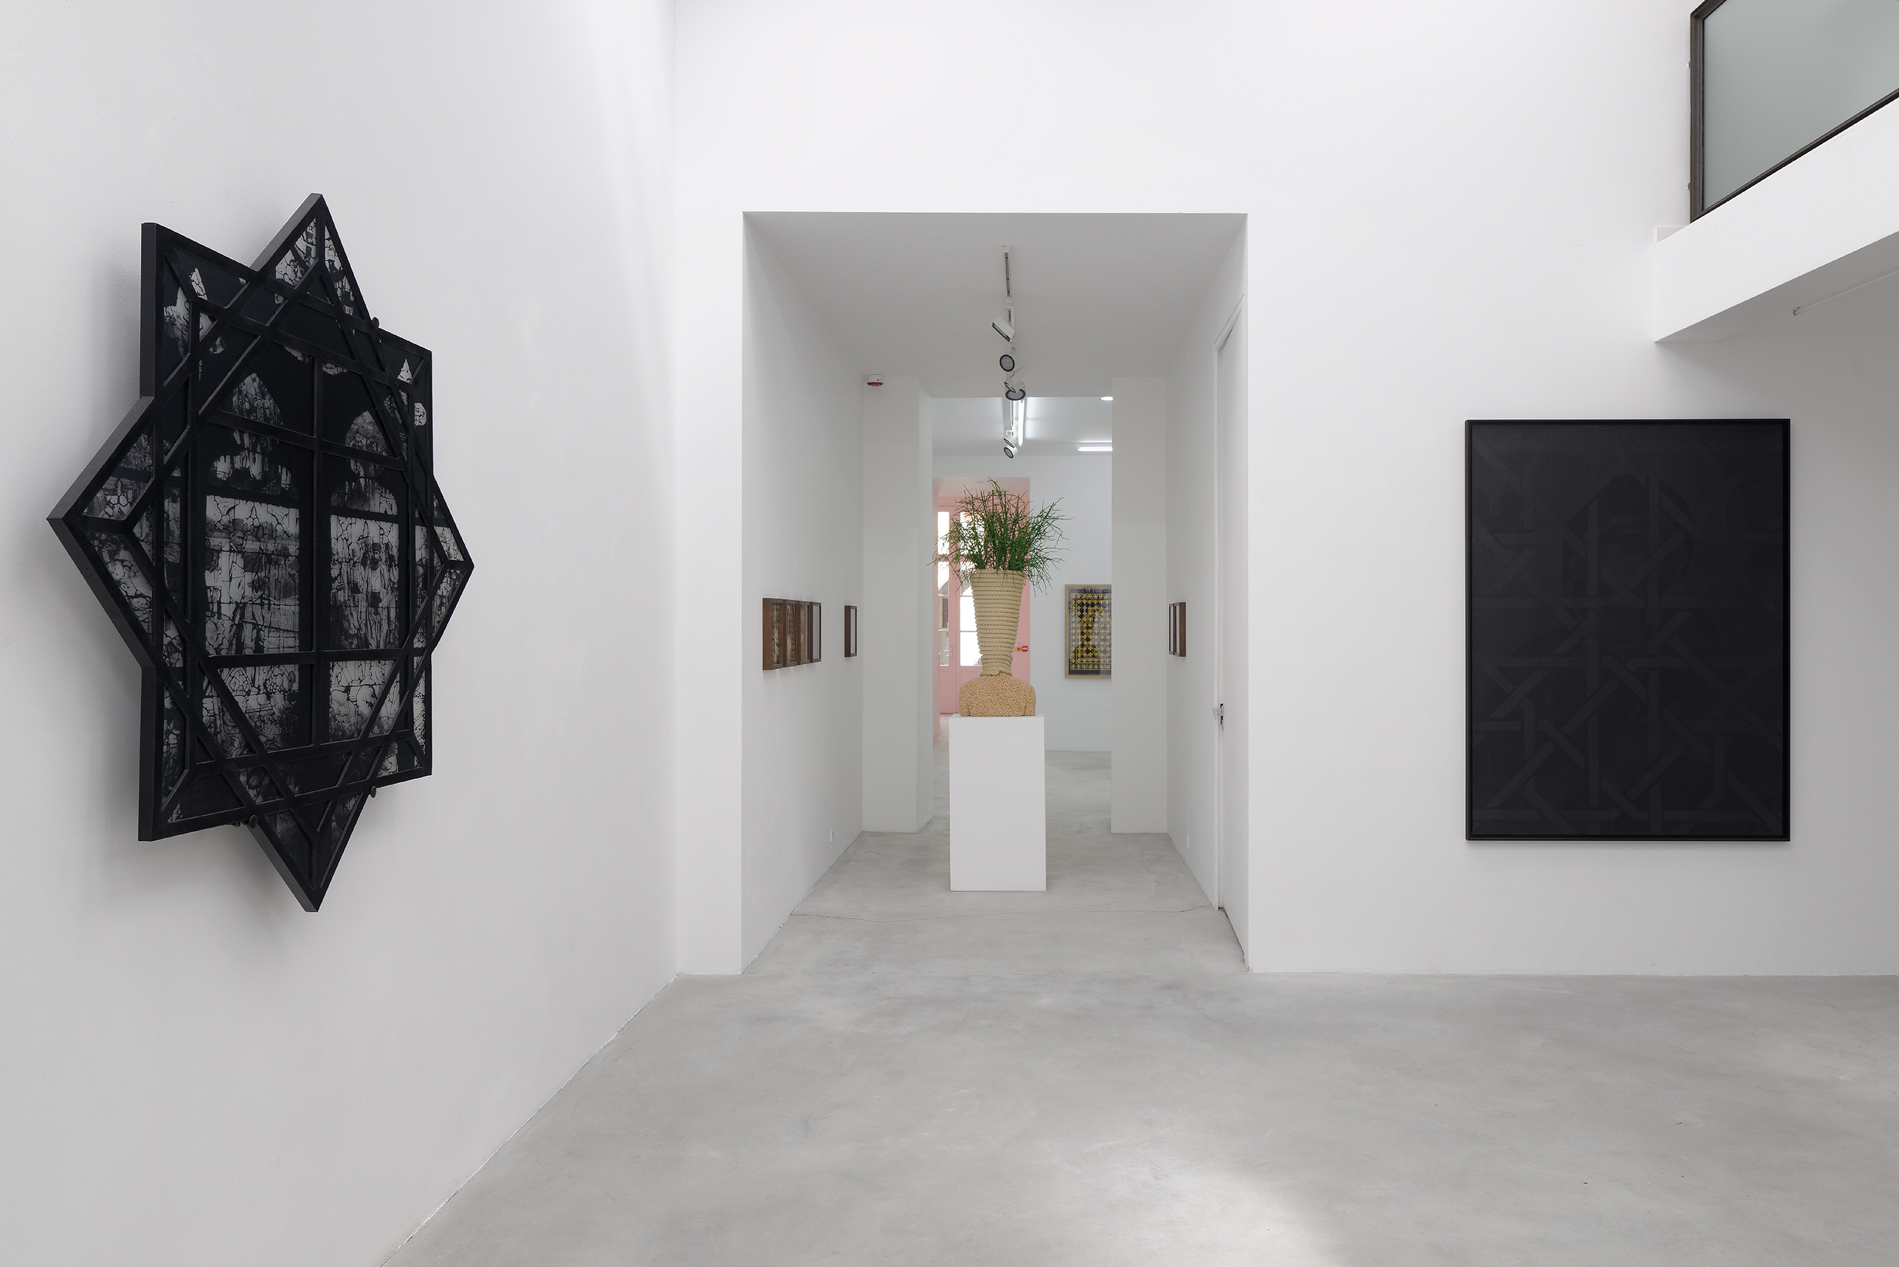 Mehdi-Georges Lahlou, Of the Confused Memory, Galerie Rabouan Moussion